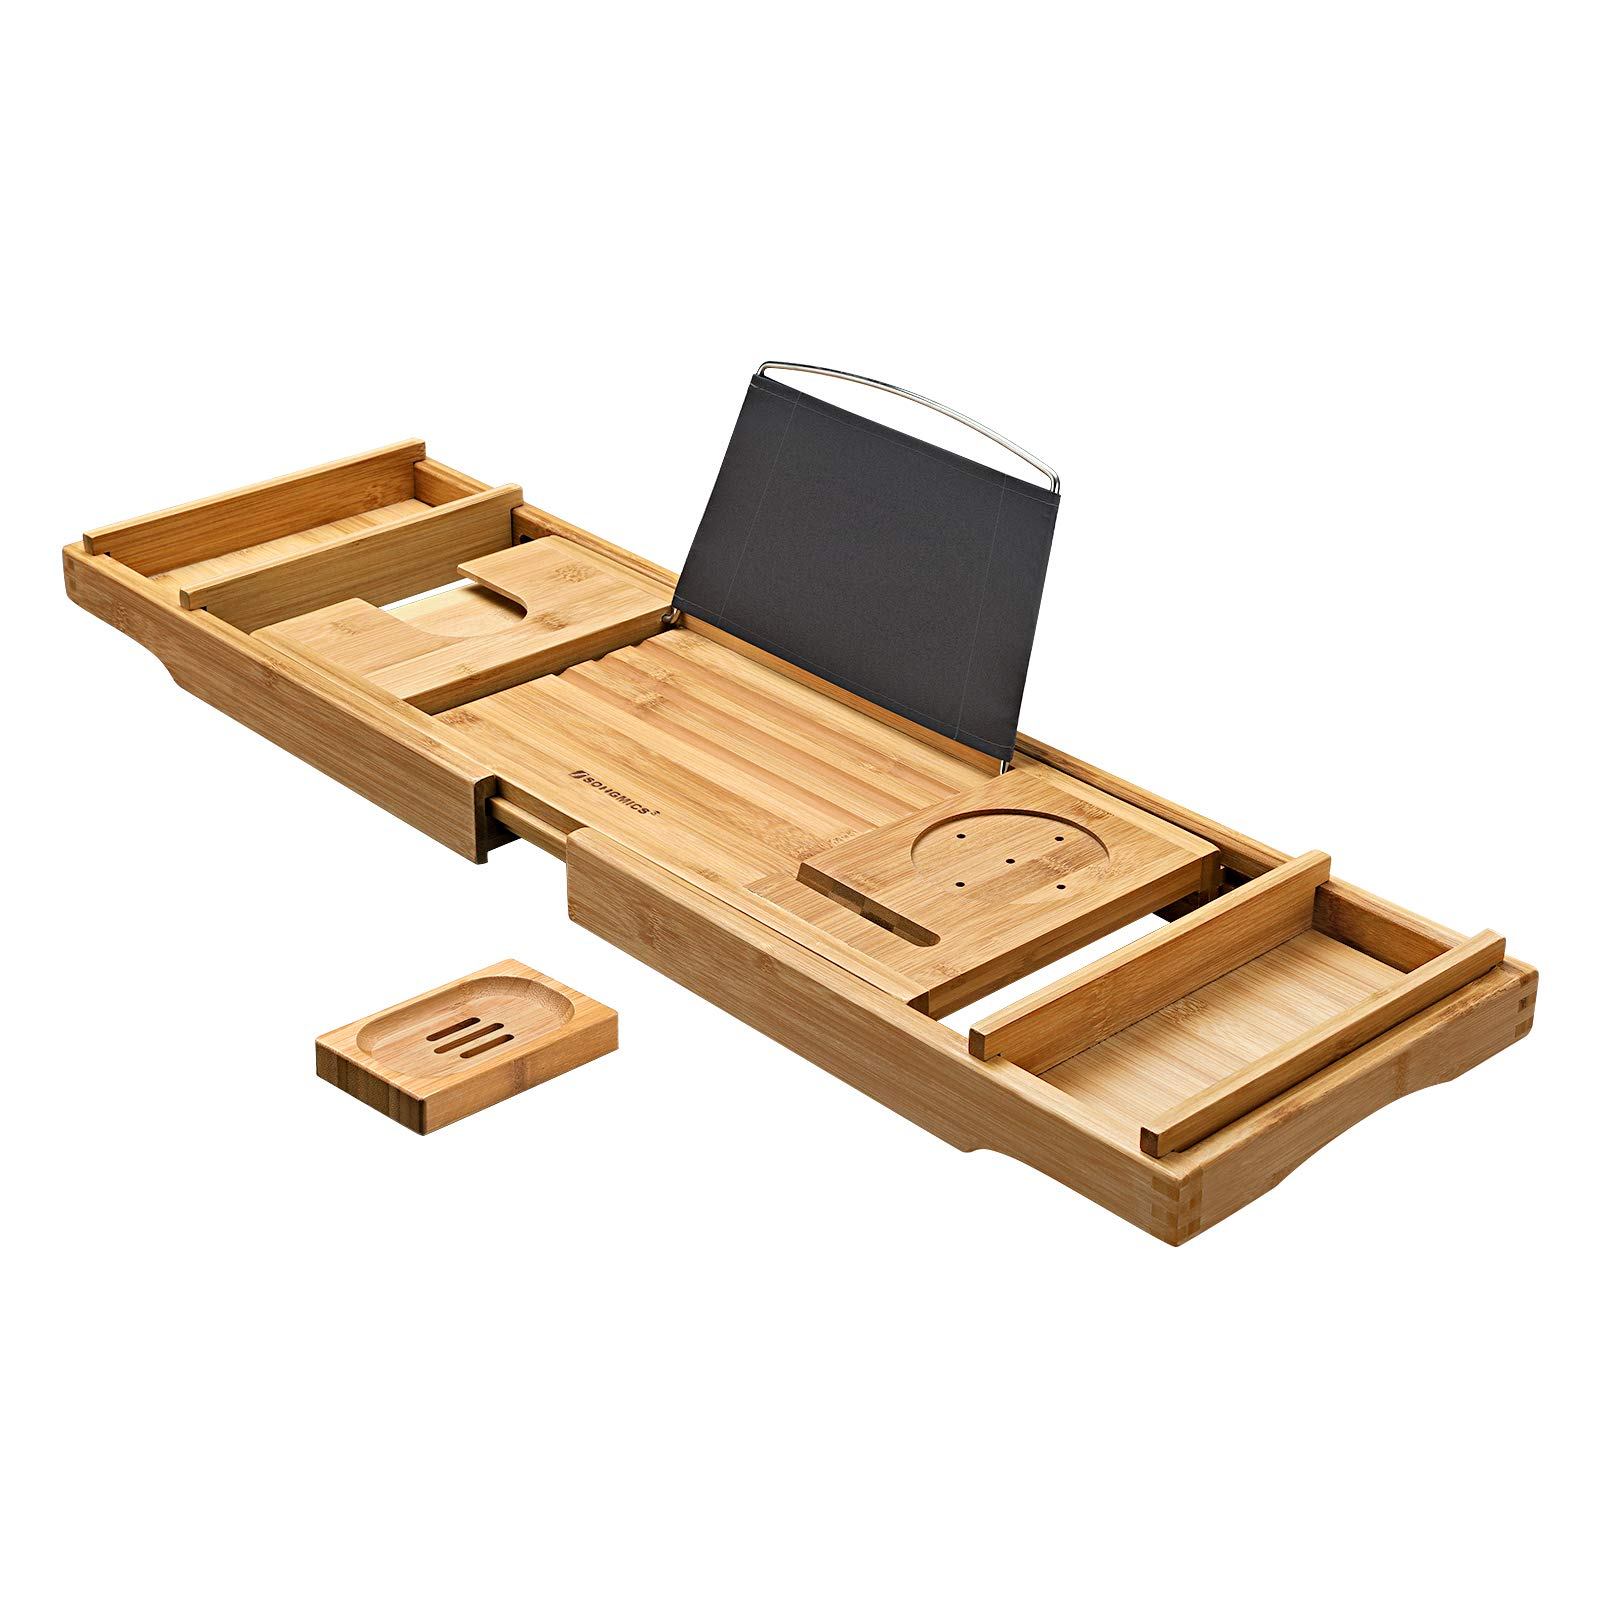 SONGMICS Bamboo Bath Tray, Luxury Extendable Tub Caddy Table with Tablet Phone Slots, Cup Holder, Bathroom Organizer, Extra Soap Holder, Natural UBCB88Y